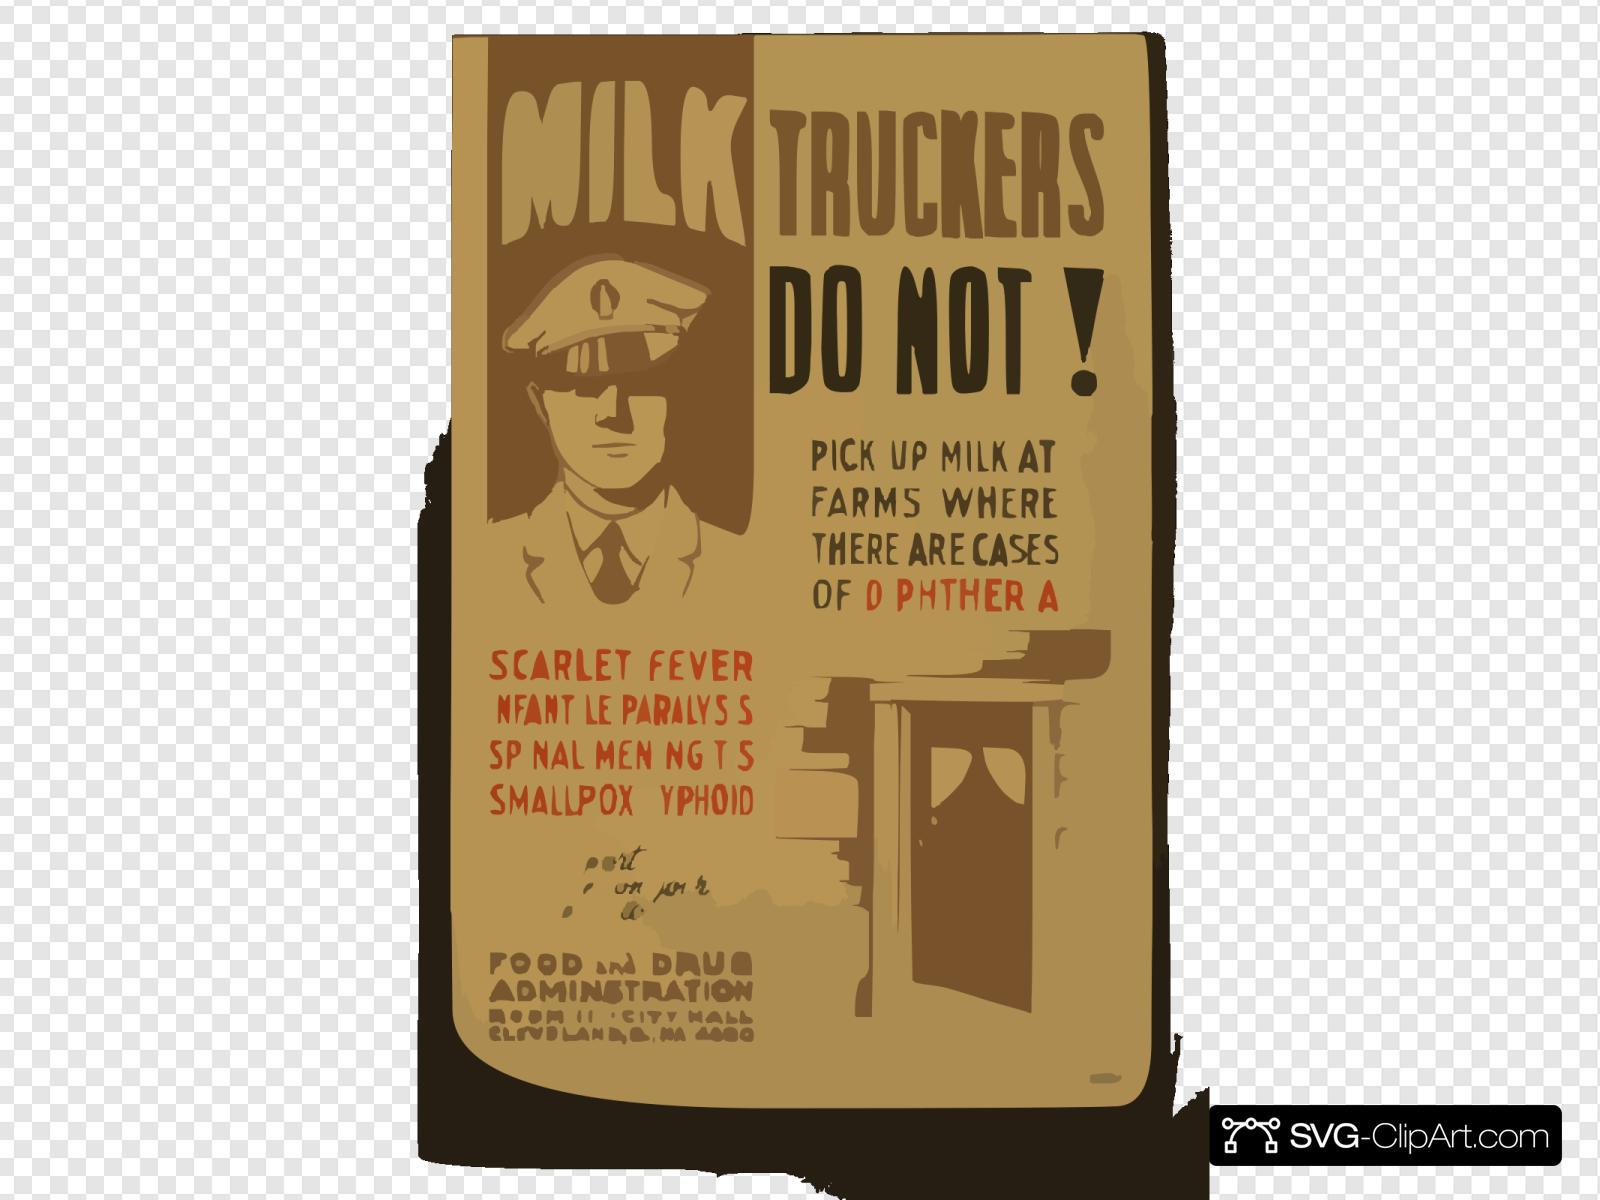 Milk Truckers Do Not! Pick Up Milk At Farms Where There Are Cases Of Diphtheria, Scarlet Fever, Infantile Paralysis, Spinal Meningitis, Smallpox, Typhoid Report All Cases On Your Route To .... Food And Drug Adminstration [sic].